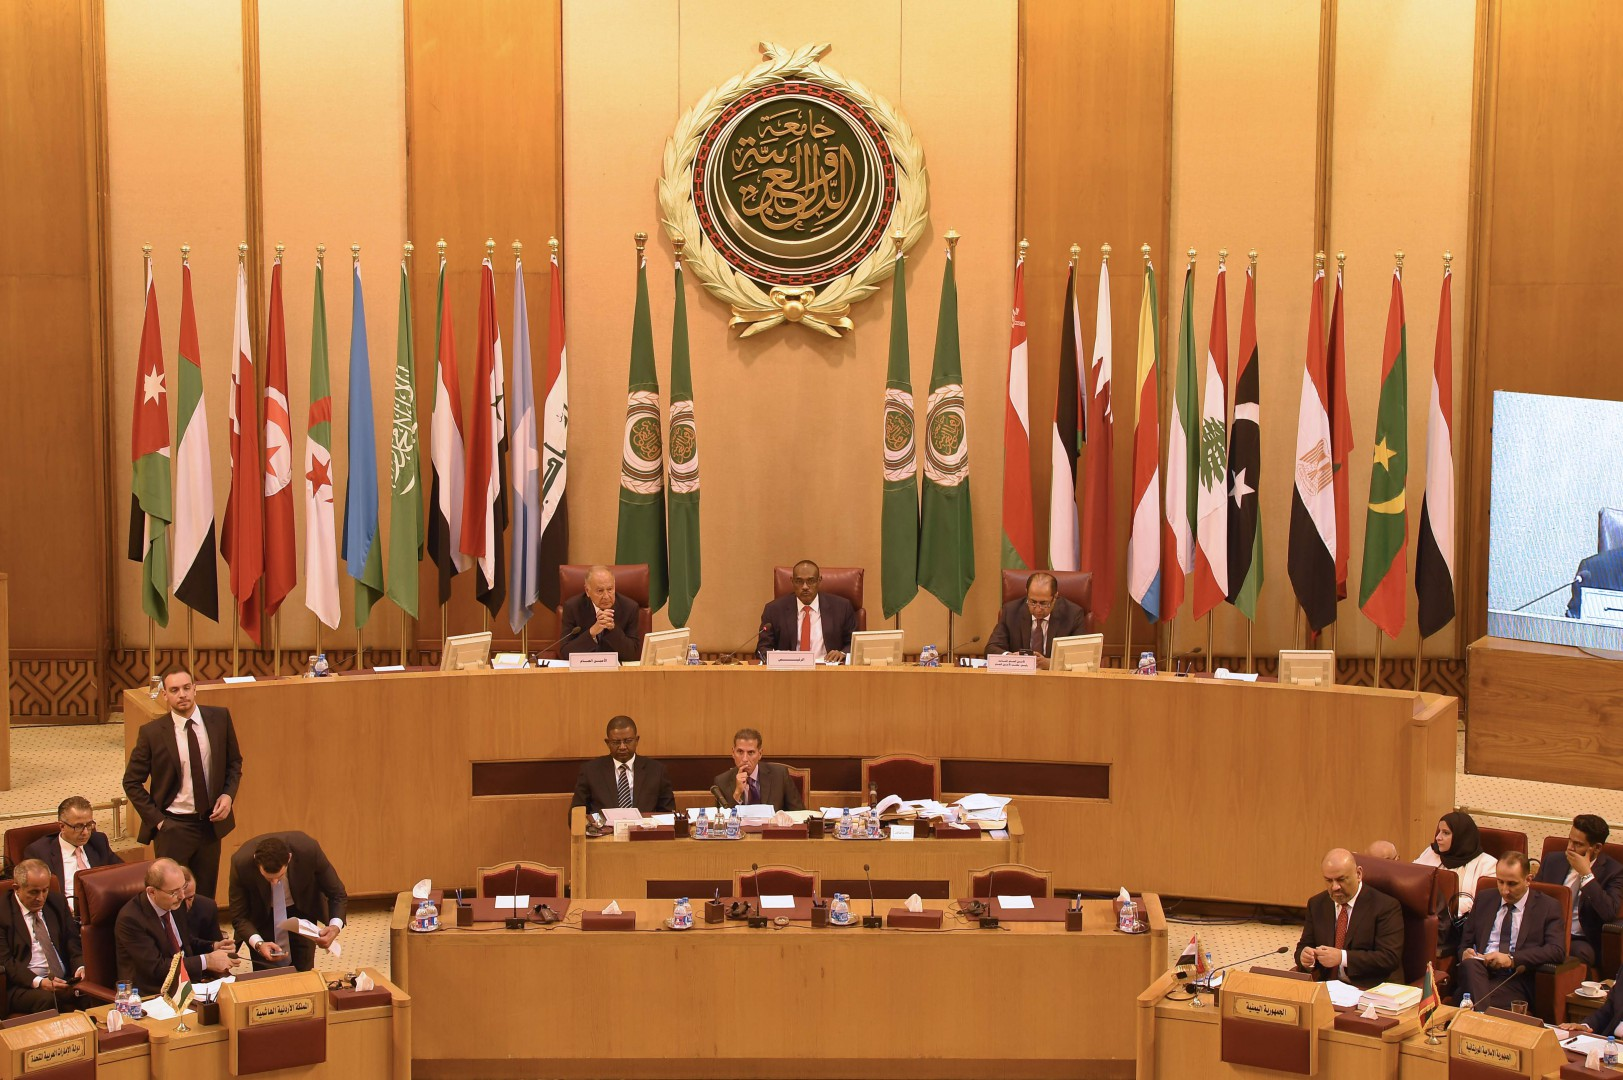 This picture taken on September 11, 2018 shows a general view of a meeting of the Arab League Foreign Ministers at its headquarters in the Egyptian capital Cairo, during a special session on the sidelines discussing the financial crisis of the United Nations Relief and Works Agency for Palestine Refugees (UNRWA)'s caused by the US scrapping its contributions. (Photo by MOHAMED EL-SHAHED / AFP)